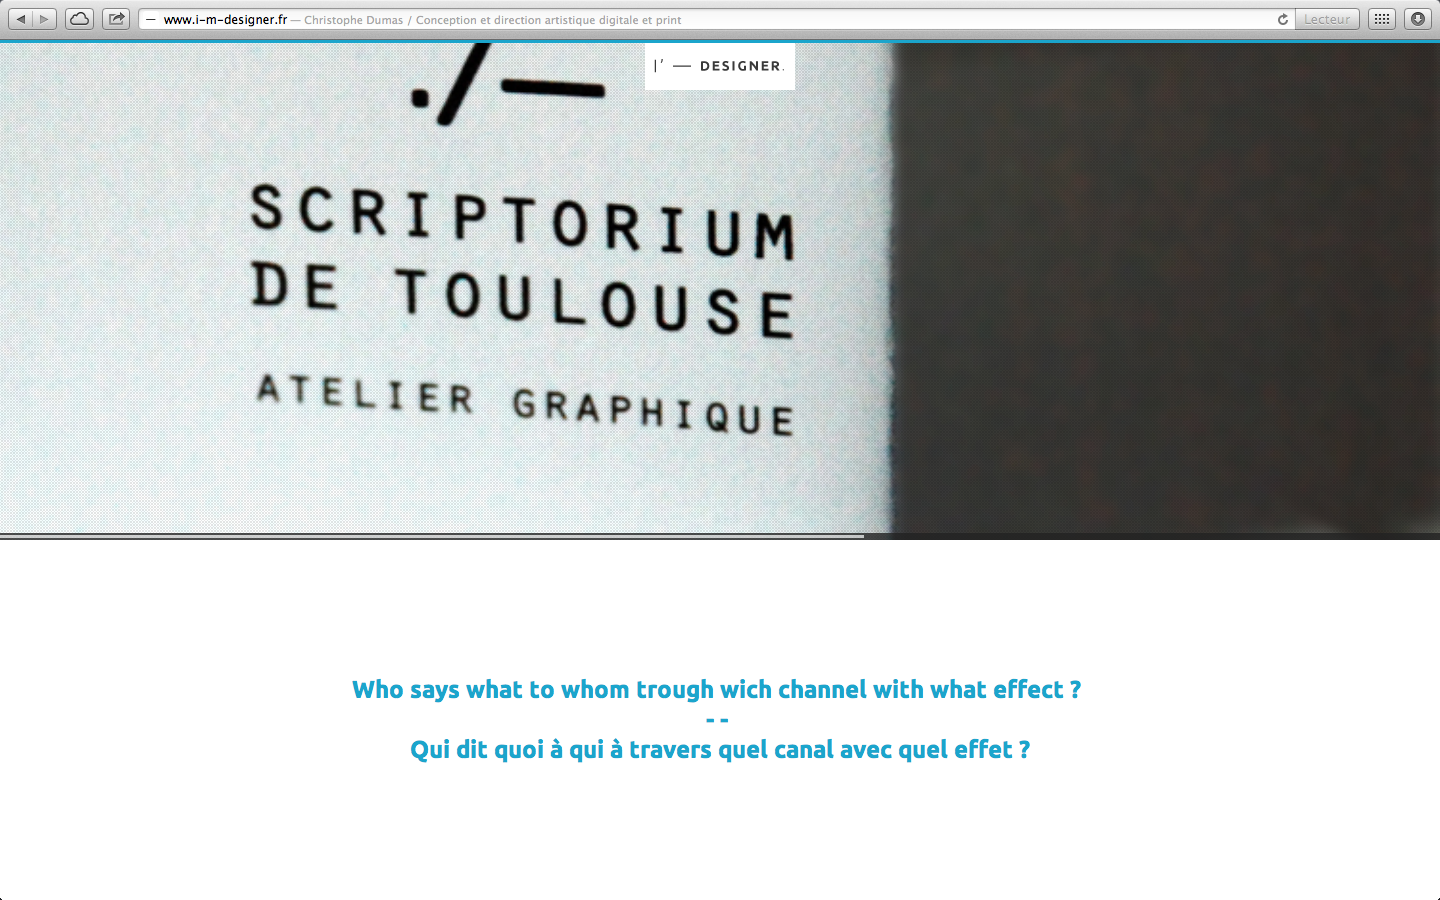 Christophe Dumas Website Screenshot